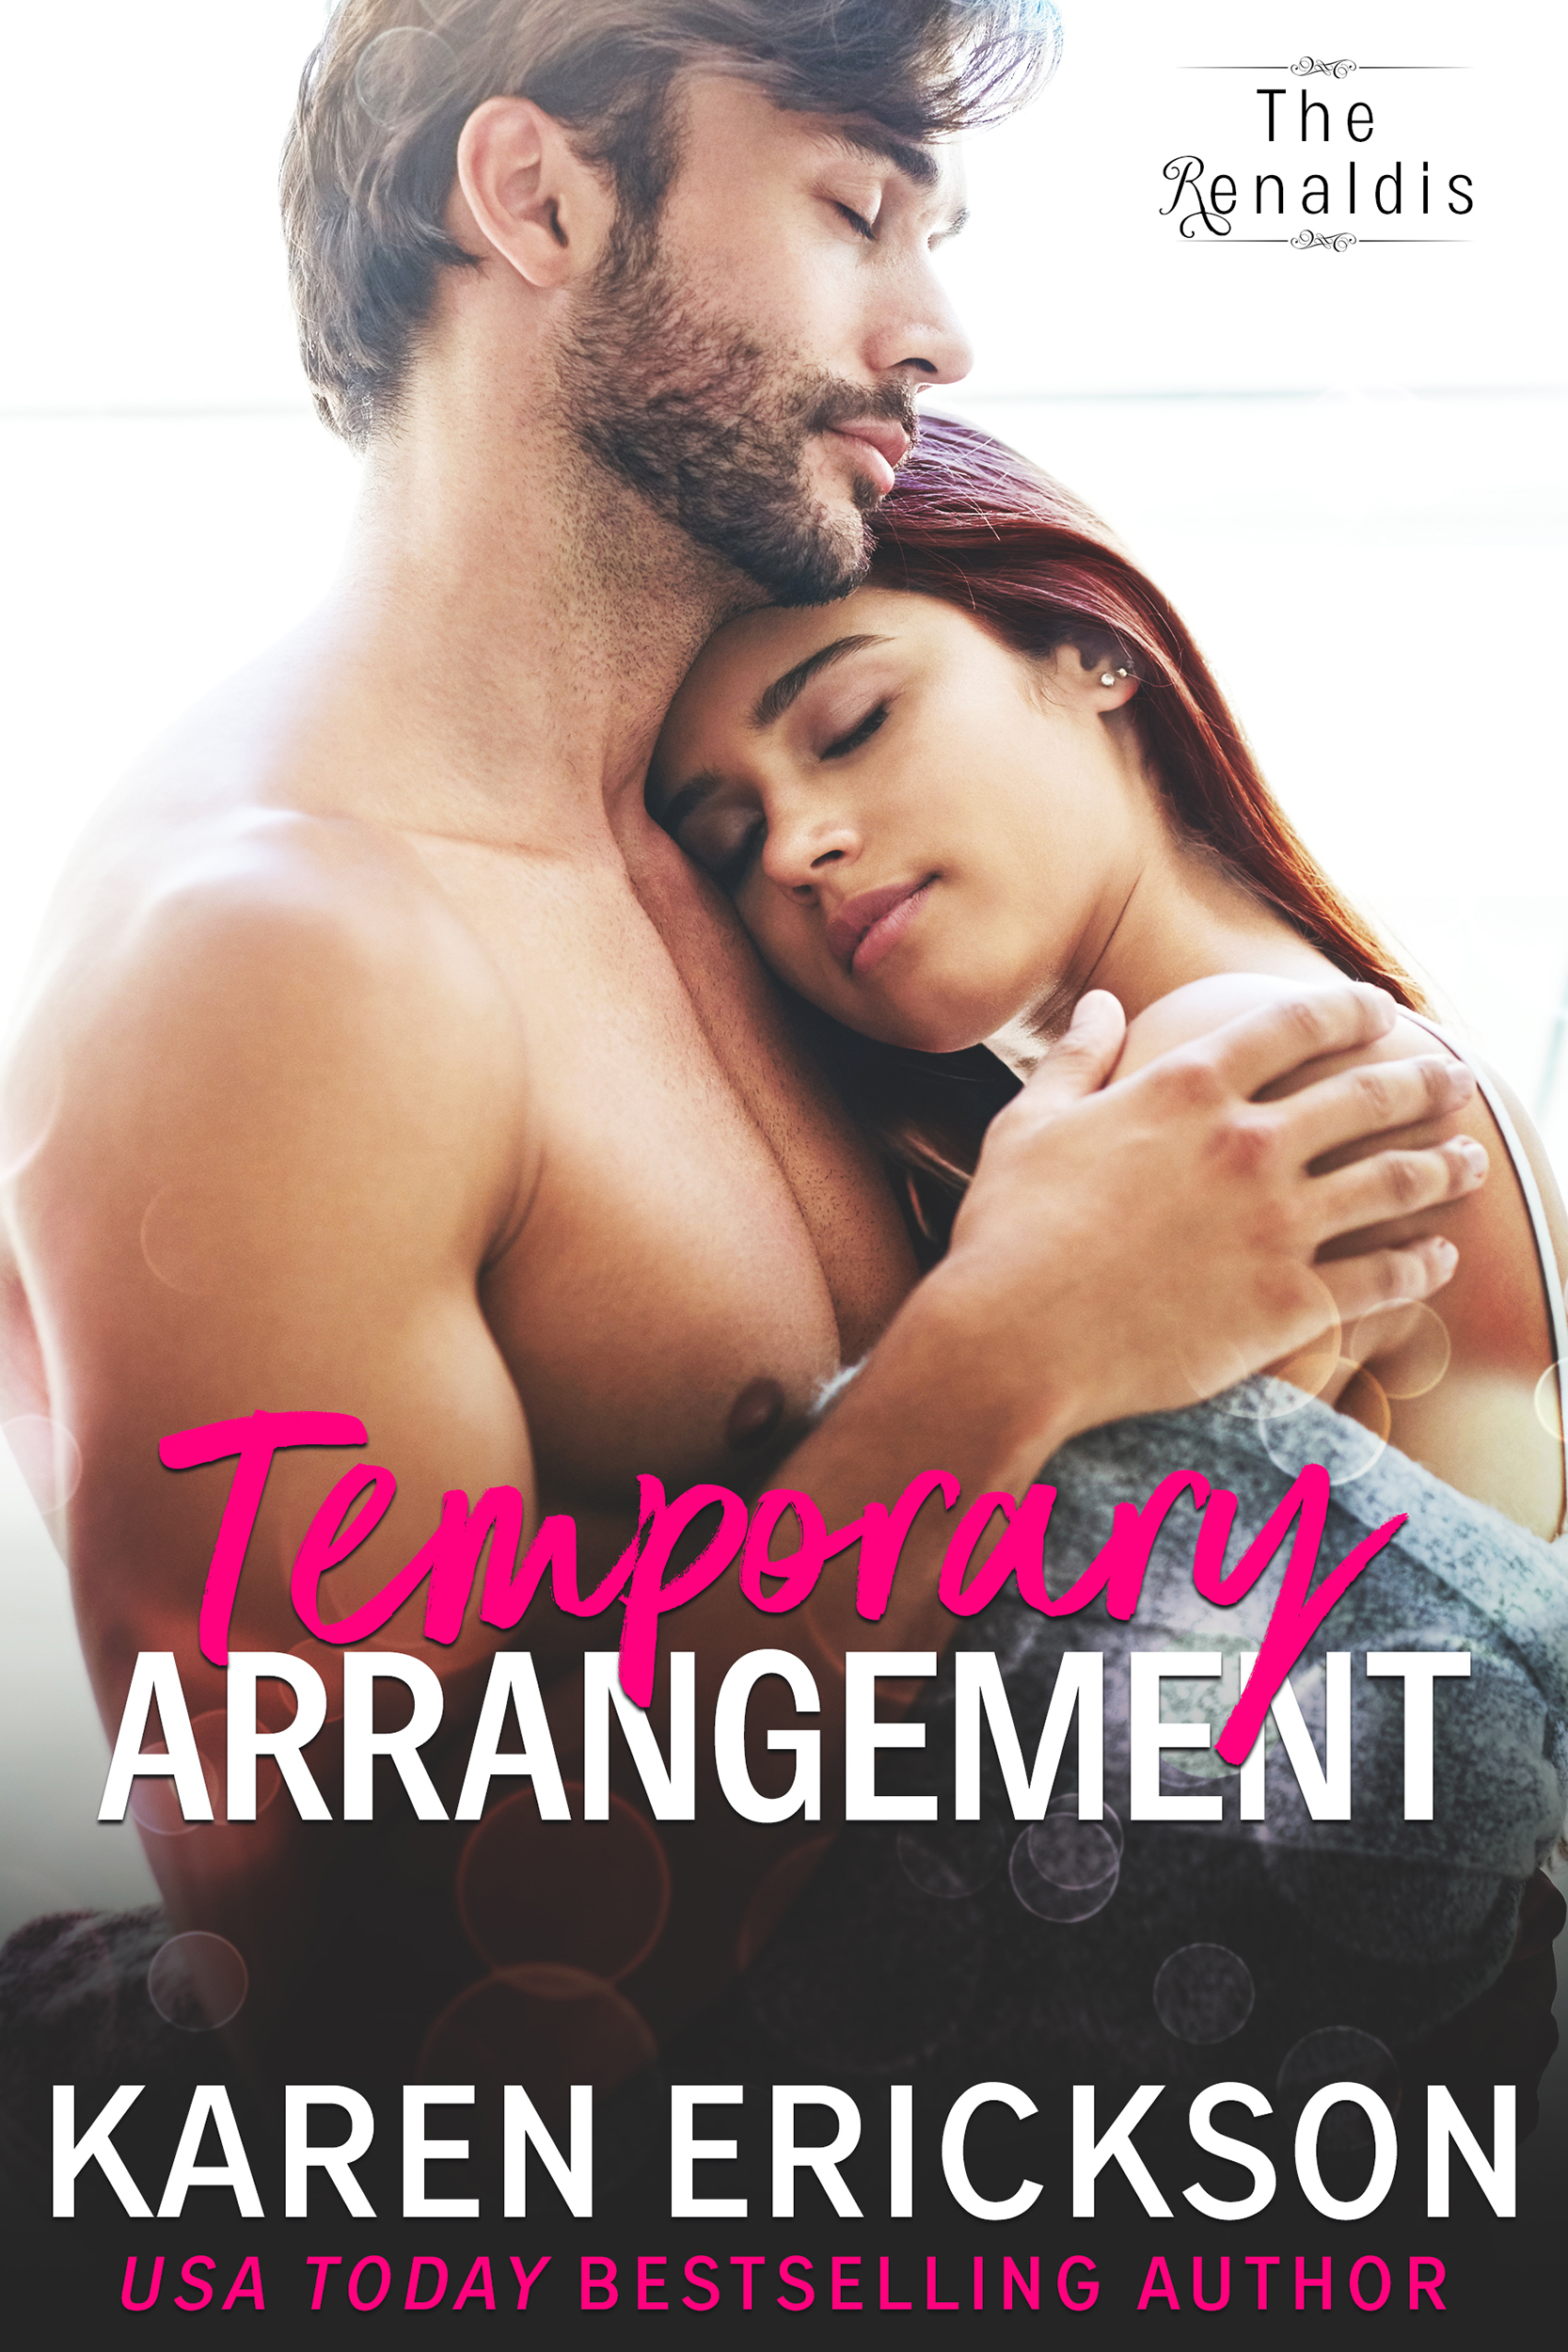 Temporary Arrangement - The Renaldis, Book 0.5Amazon •B&N •iBooks •Kobo • GooglePlayPrequel to TEMPTED BY HER BOSSLook, but don't touch…Matteo Renaldi may have lost his wife, but he takes care of his son.That's why he fired the nanny. And the one before that. No one is good enough.Until Paige Stewart arrives like a miracle, winning first his mother and then little Matty over. And Matteo can't deny he's quite taken with her as well.He can't stop looking at the sweet and sexy new hire, but every time he does he reminds himself all over again why he can't have her.She's the nanny.It's foolish.He signs her paychecks.It's forbidden.She's too young.It's inevitable.Amazon •B&N •iBooks •Kobo • GooglePlay